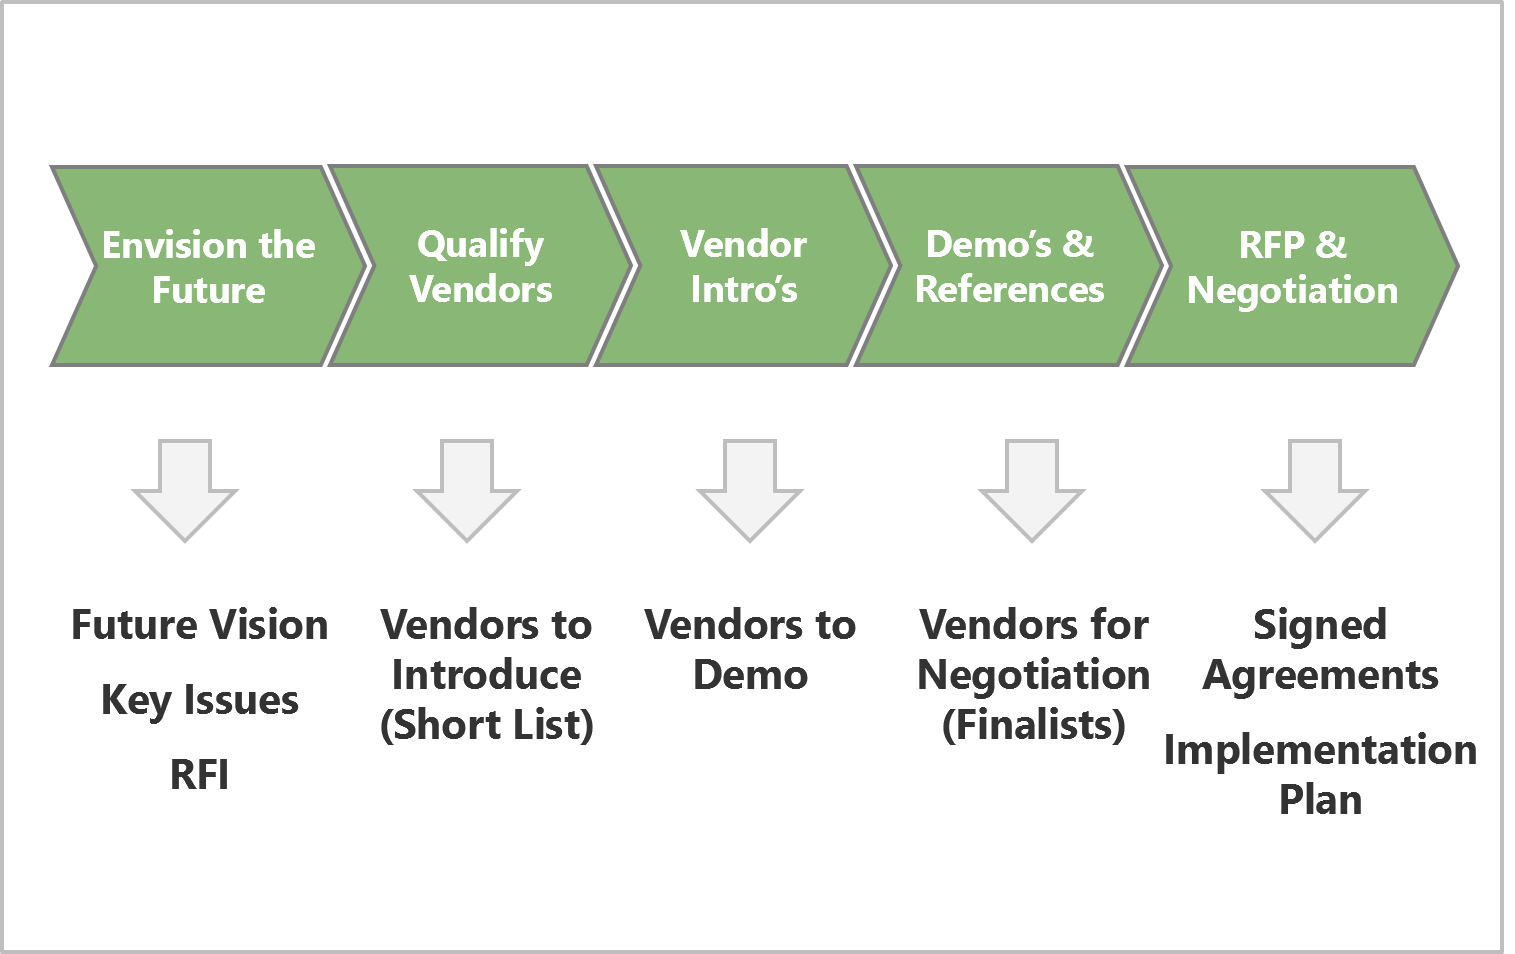 Software Vendor Selection RFI Process